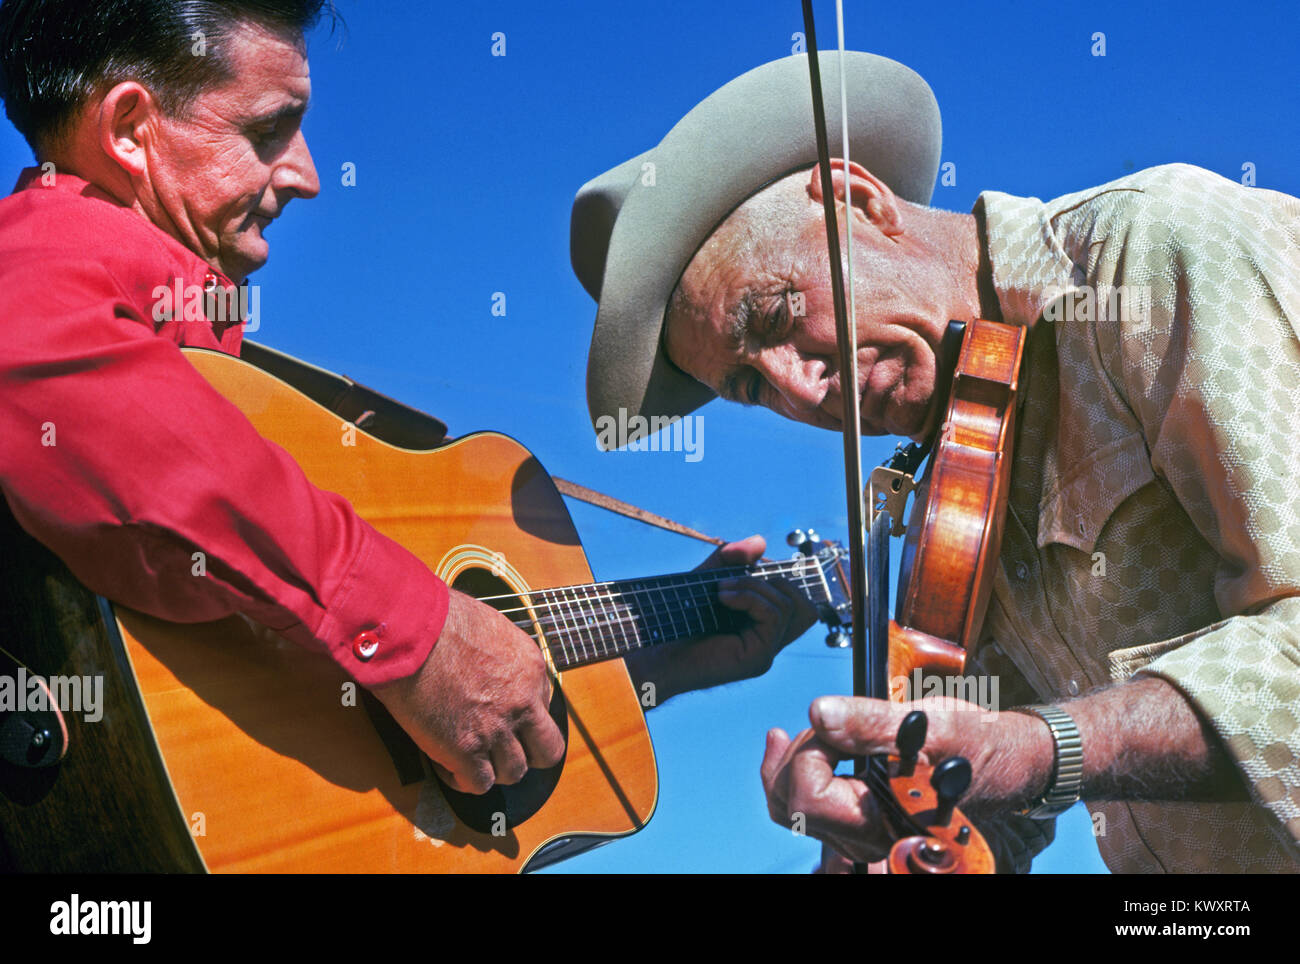 A man playing a fiddle or violin and a man playing an acoustic guitar at an old time fiddling contest in Truth or - Stock Image